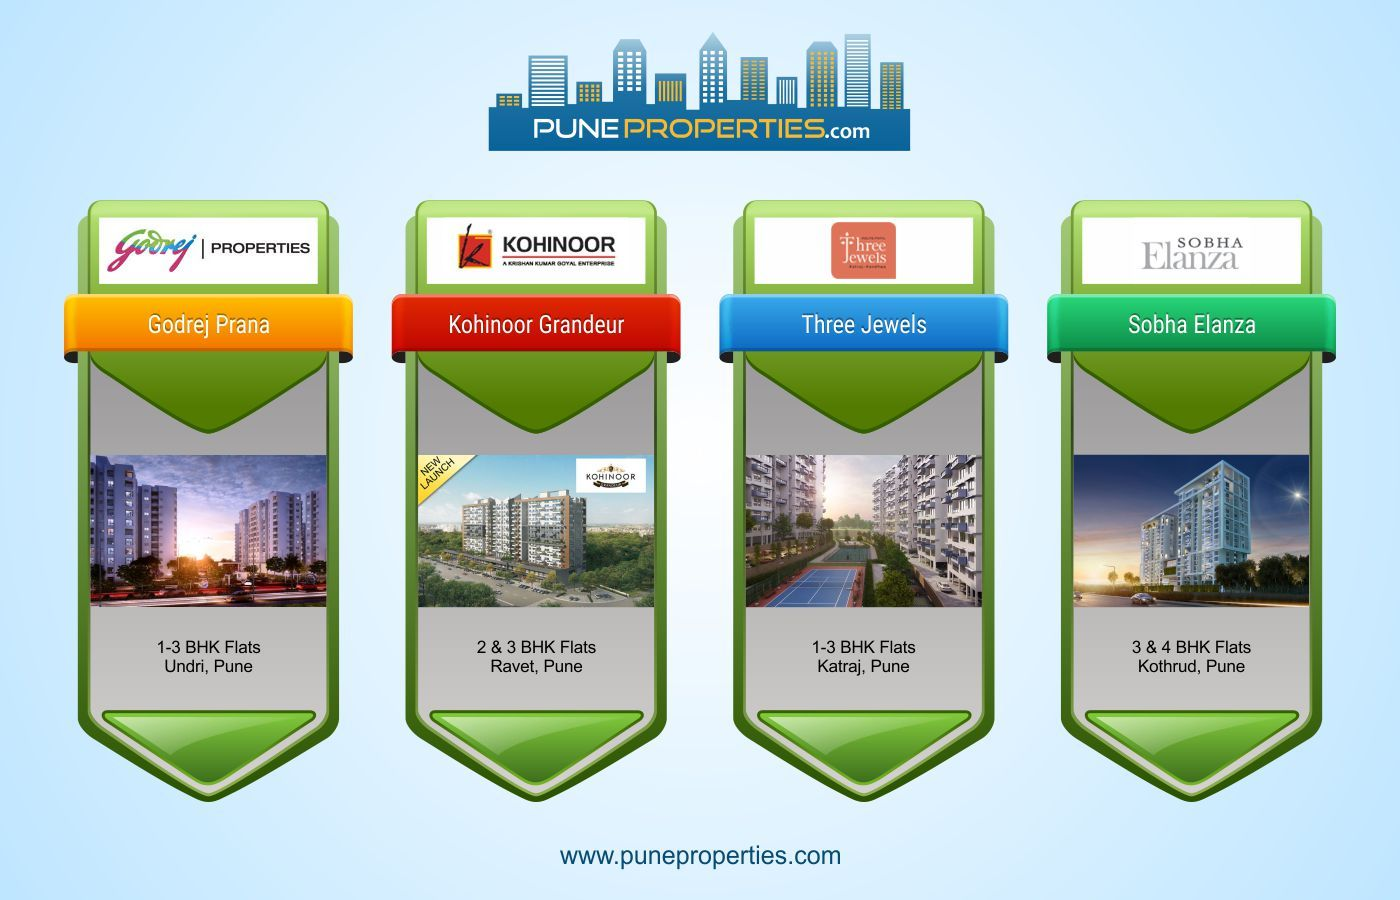 Http Www Puneproperties Com Real Estate Investing Pune